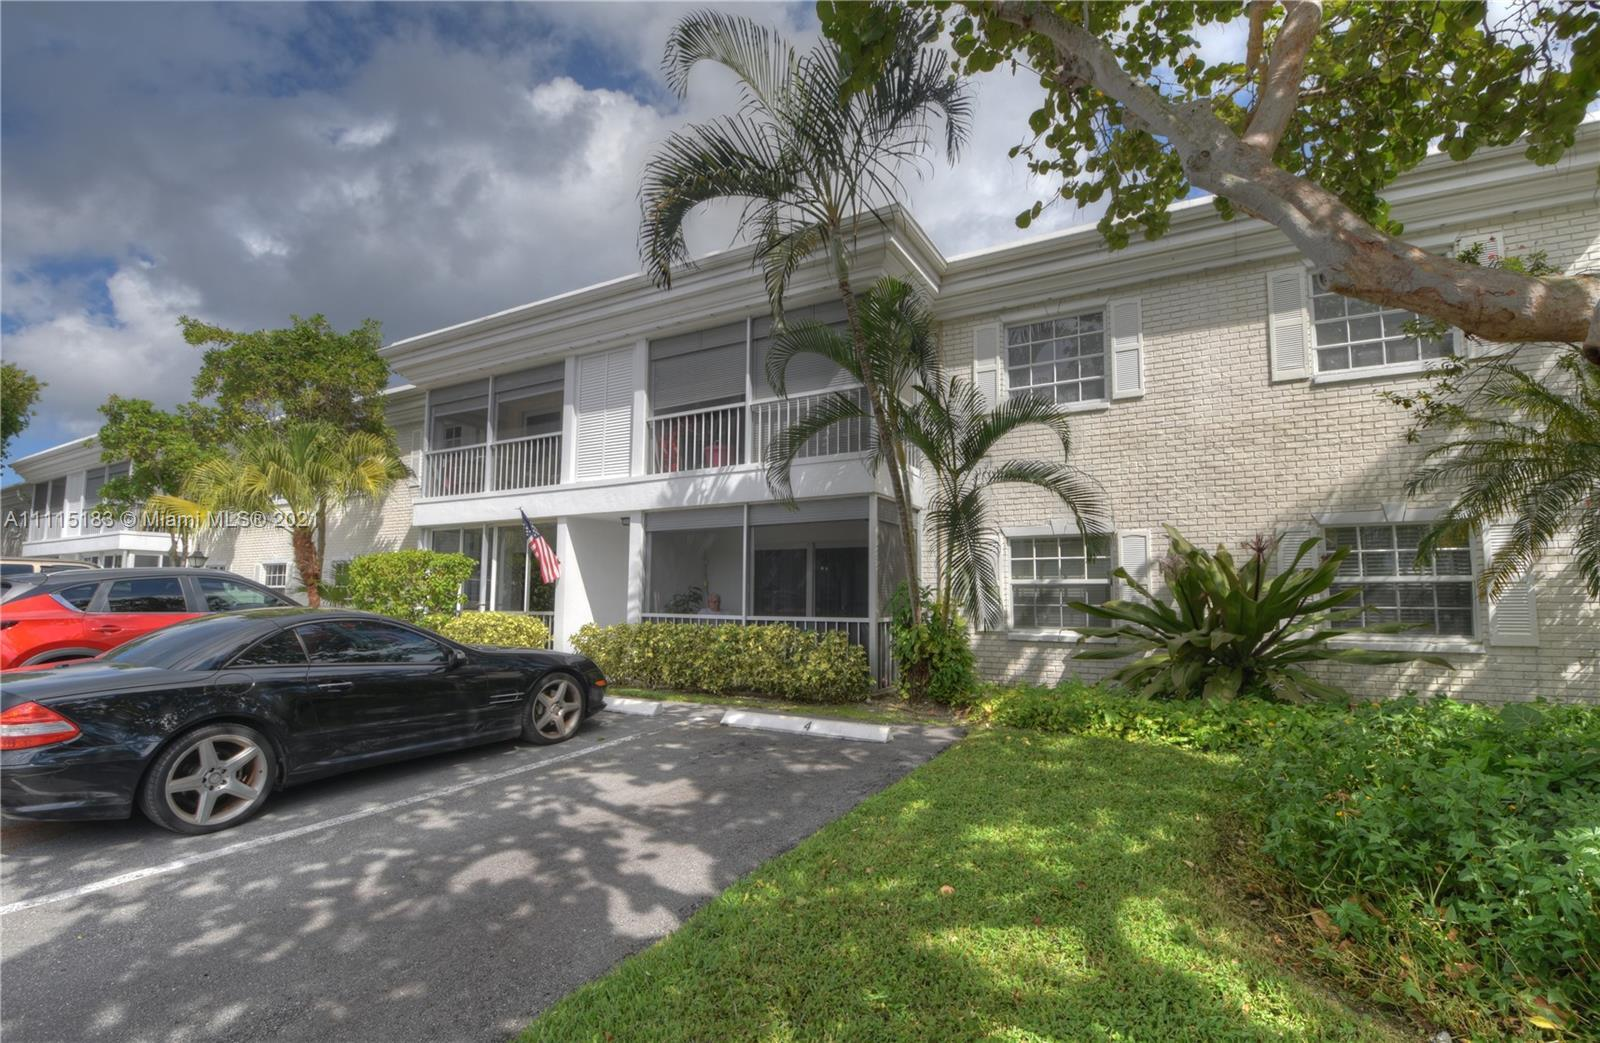 This wonderful 2/2 condo is just 1 unit away from the canal to the Intracoastal waterway.  It has be